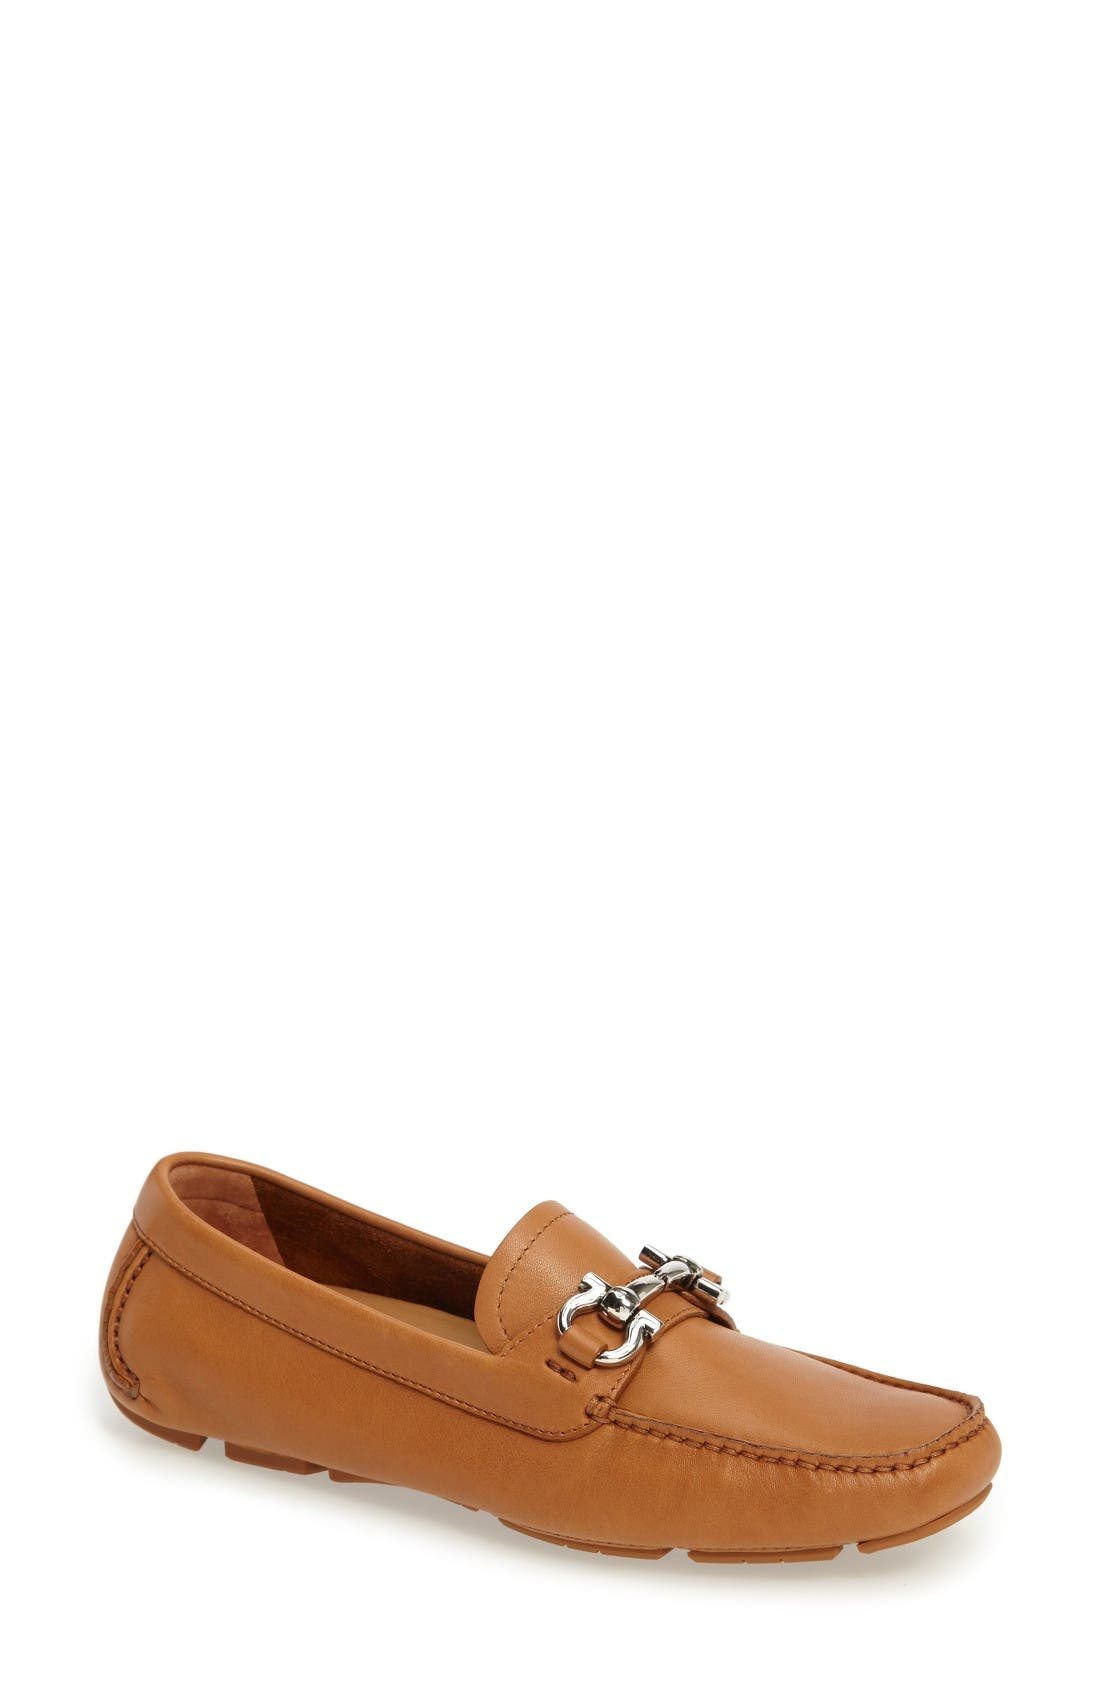 Salvatore Ferragamo Parigi Loafer (Women)